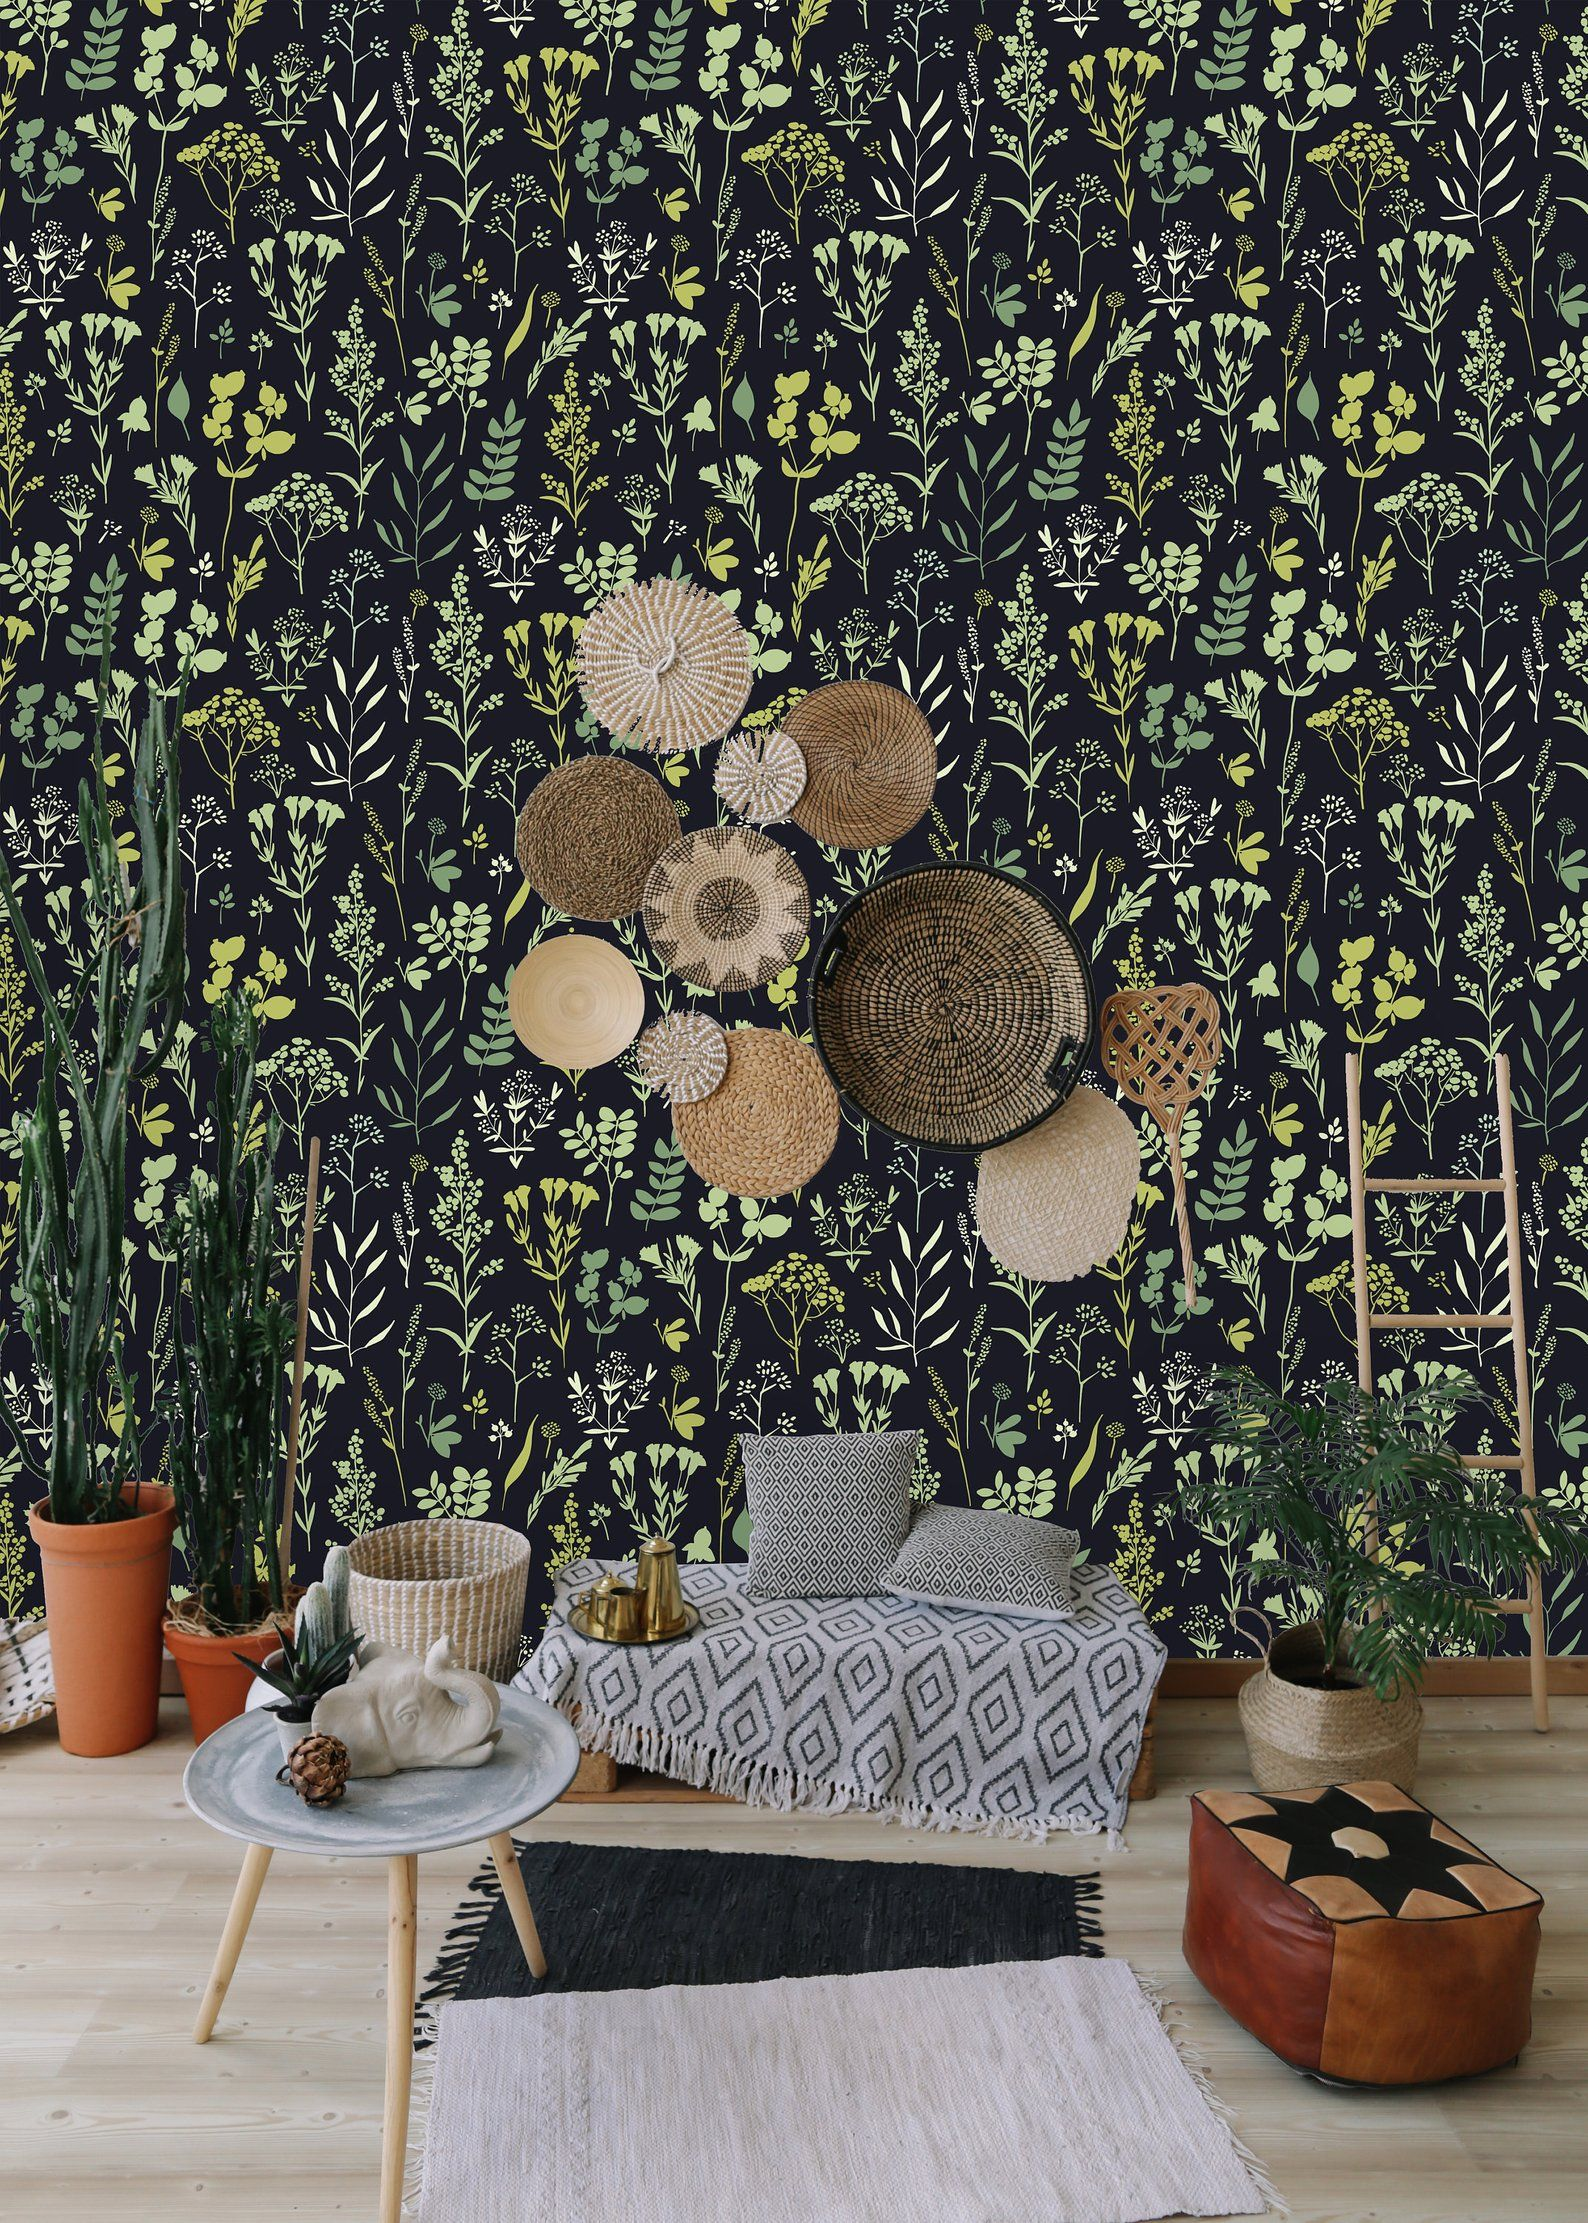 Herbs And Floral Motifs Removable Wallpaper Peel And Stick Etsy Wall Wallpaper Removable Wallpaper Wall Murals